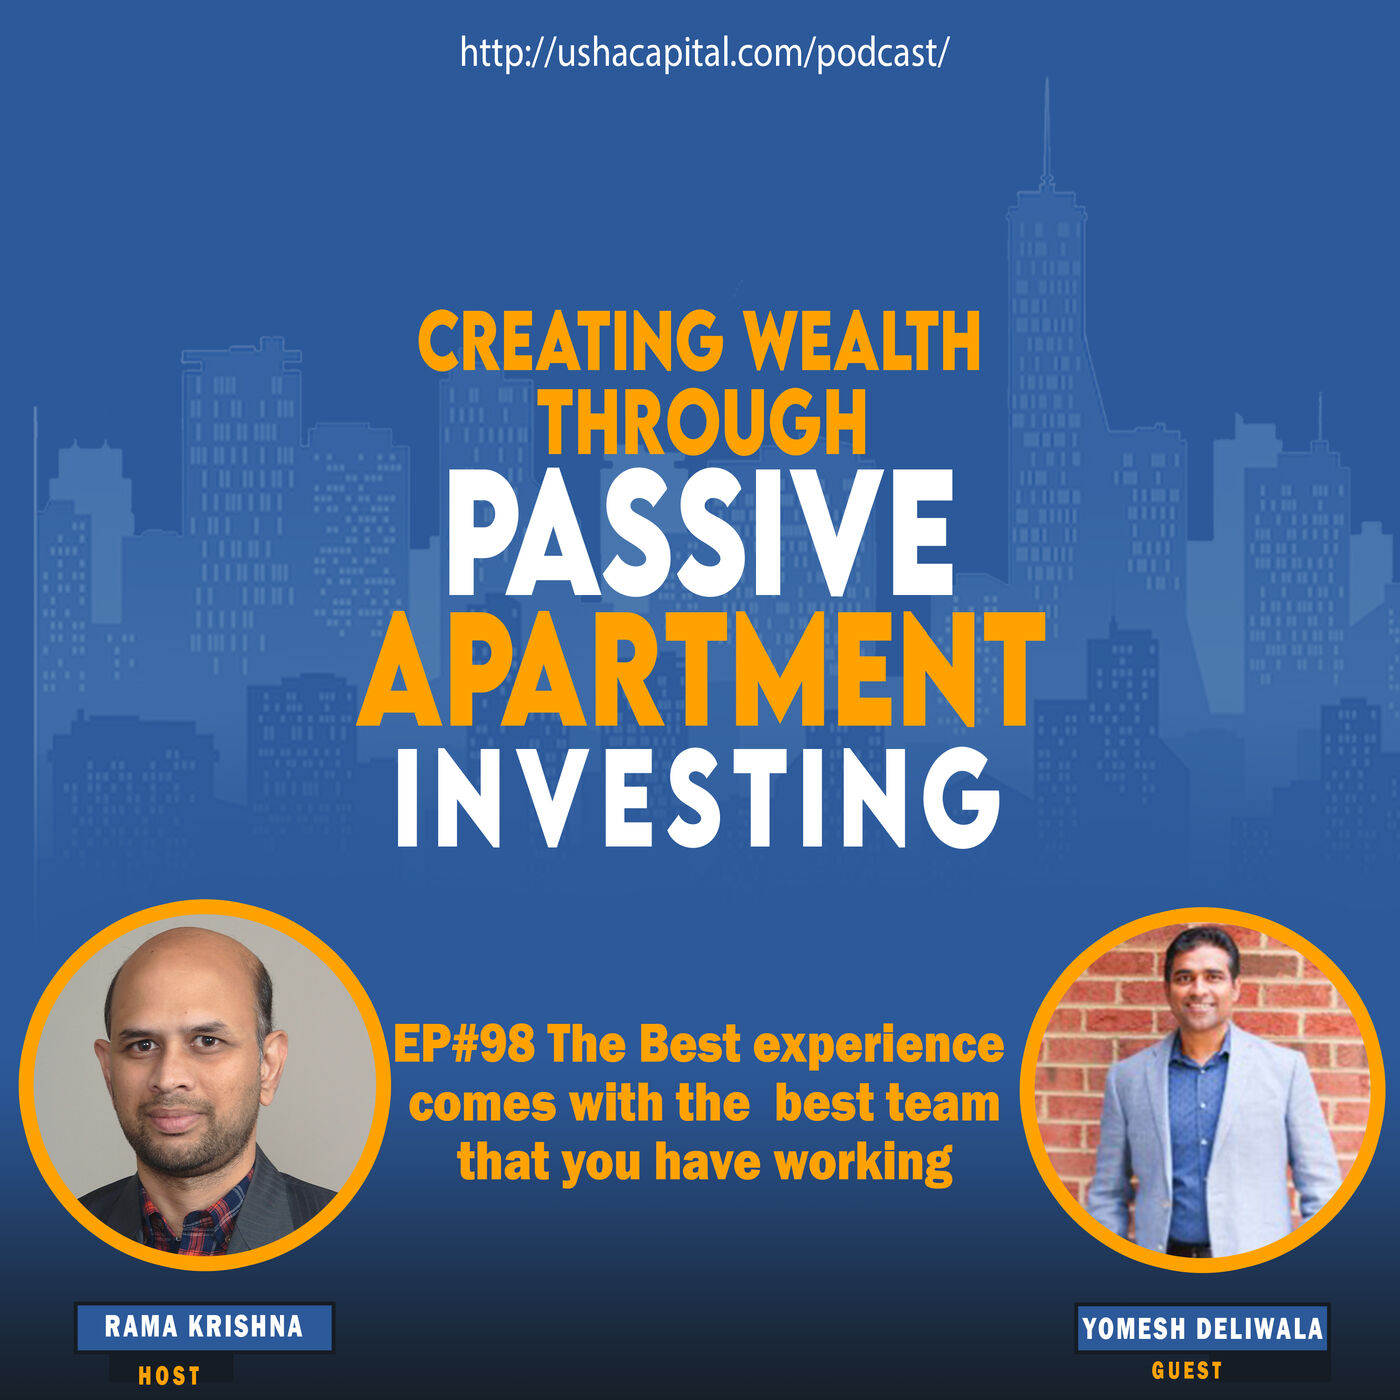 EP#98 The Best experience comes with the best team that you have working with Yomesh Deliwala